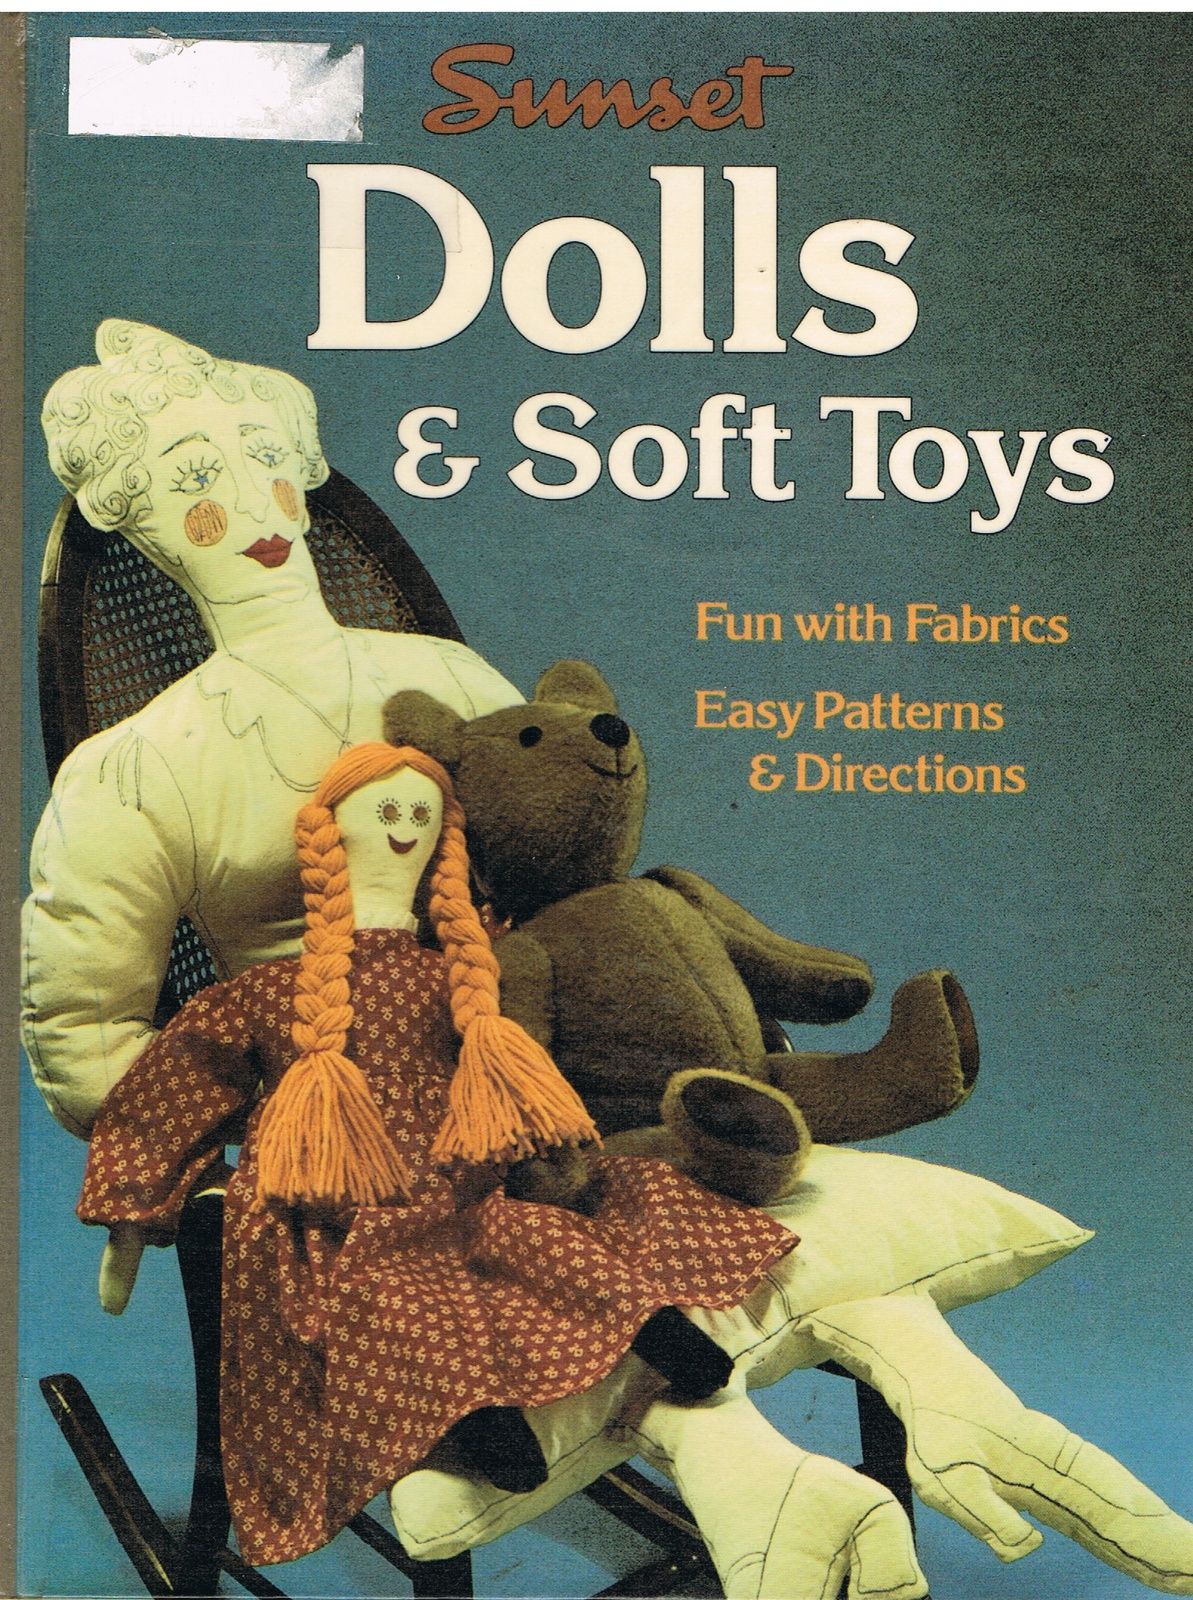 Sunset dolls and soft toys